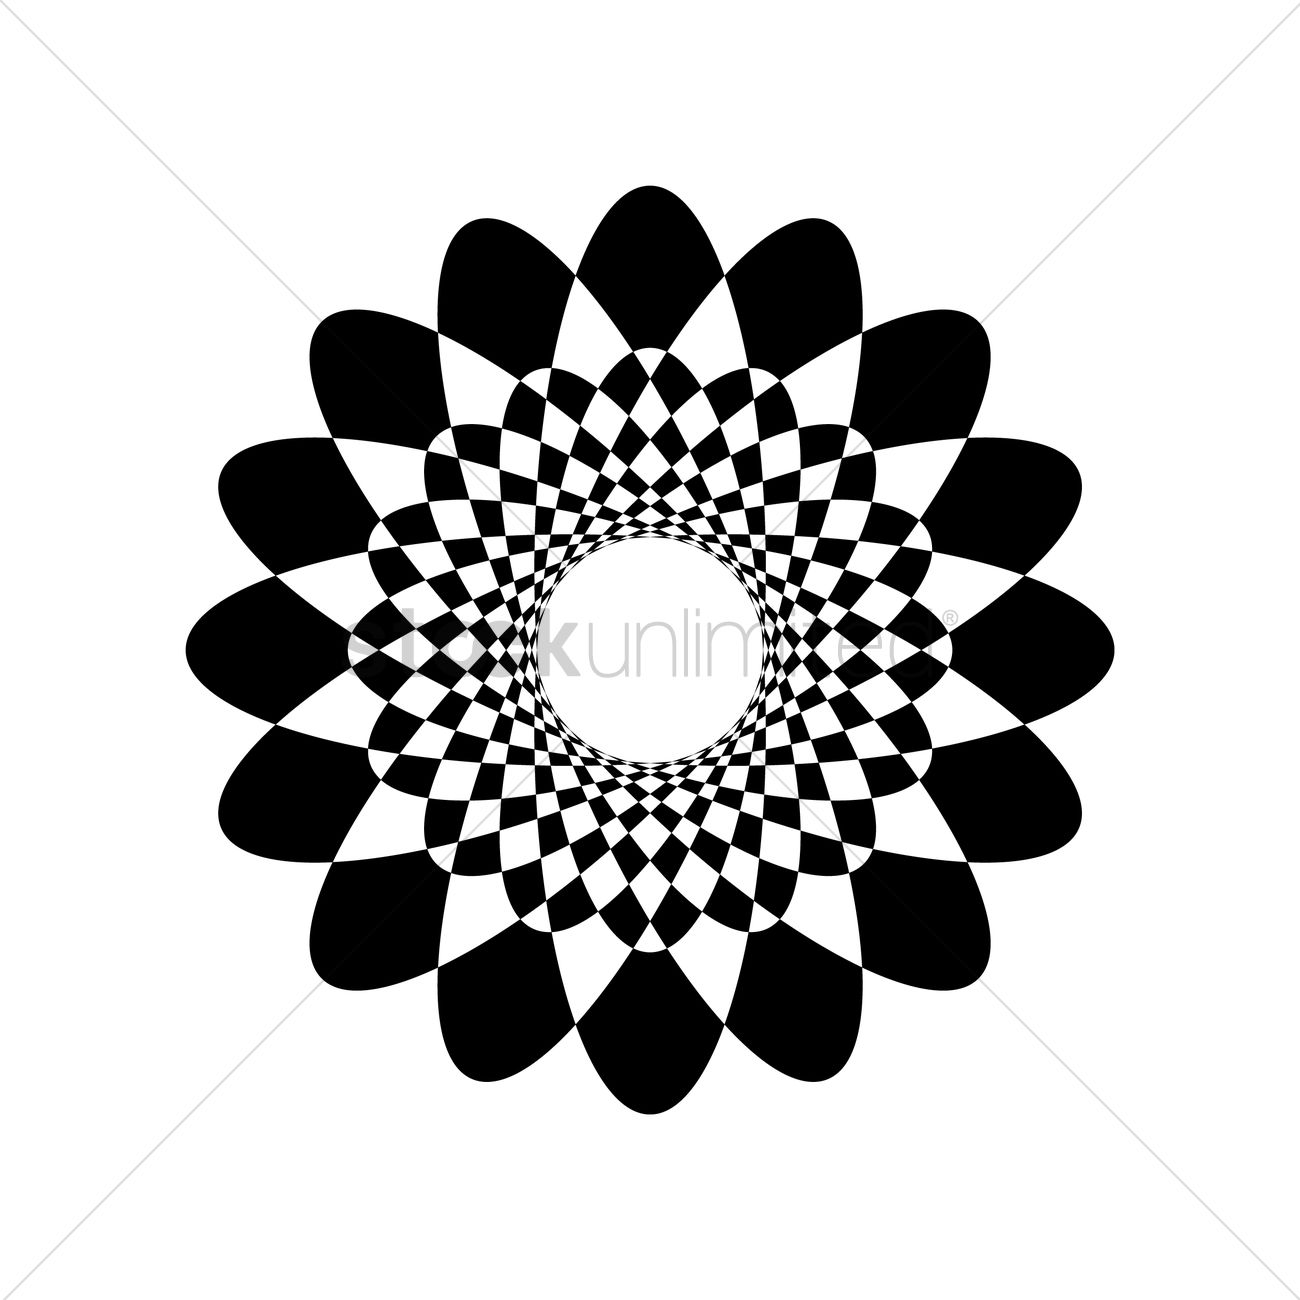 1300x1300 Geometrical Floral Design Vector Image